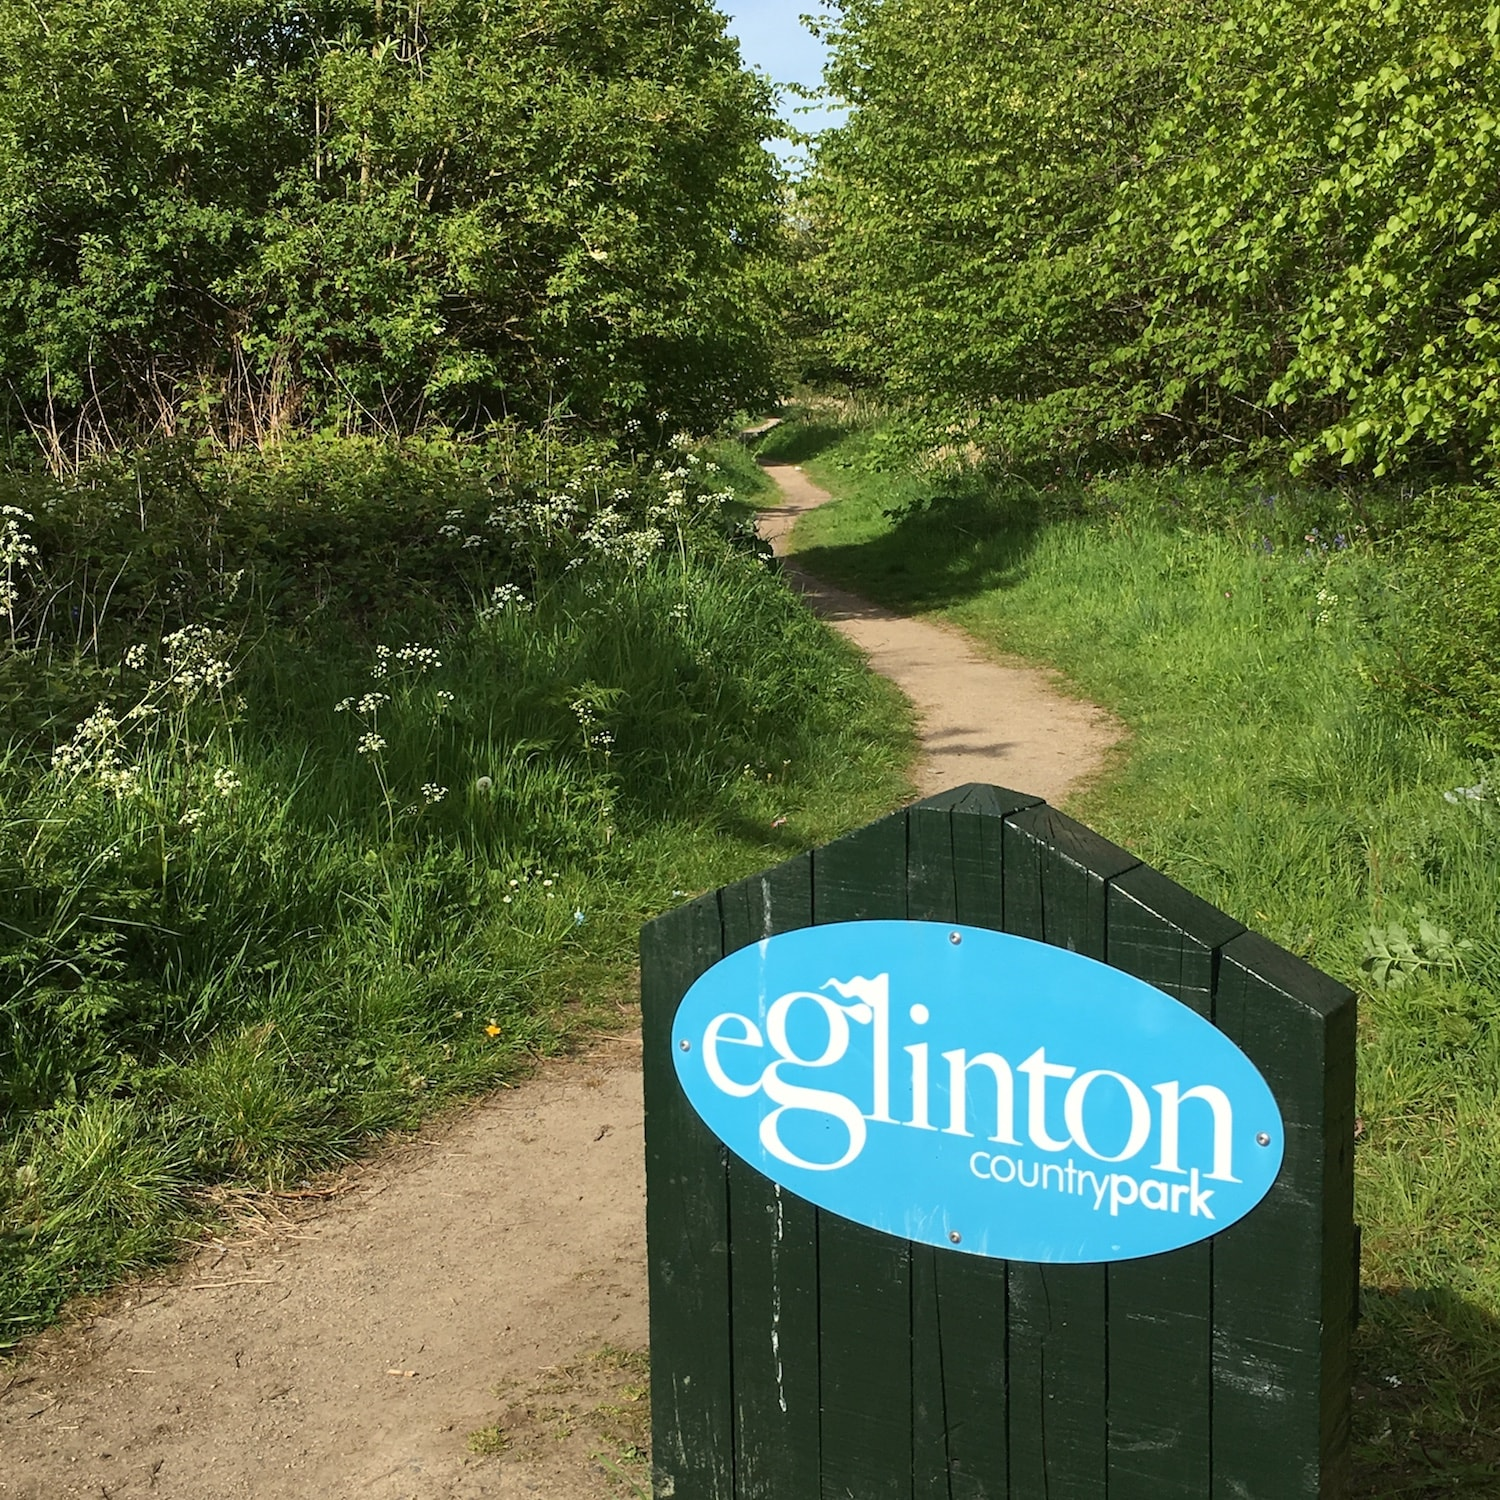 Path leading to Eglinton Country Park